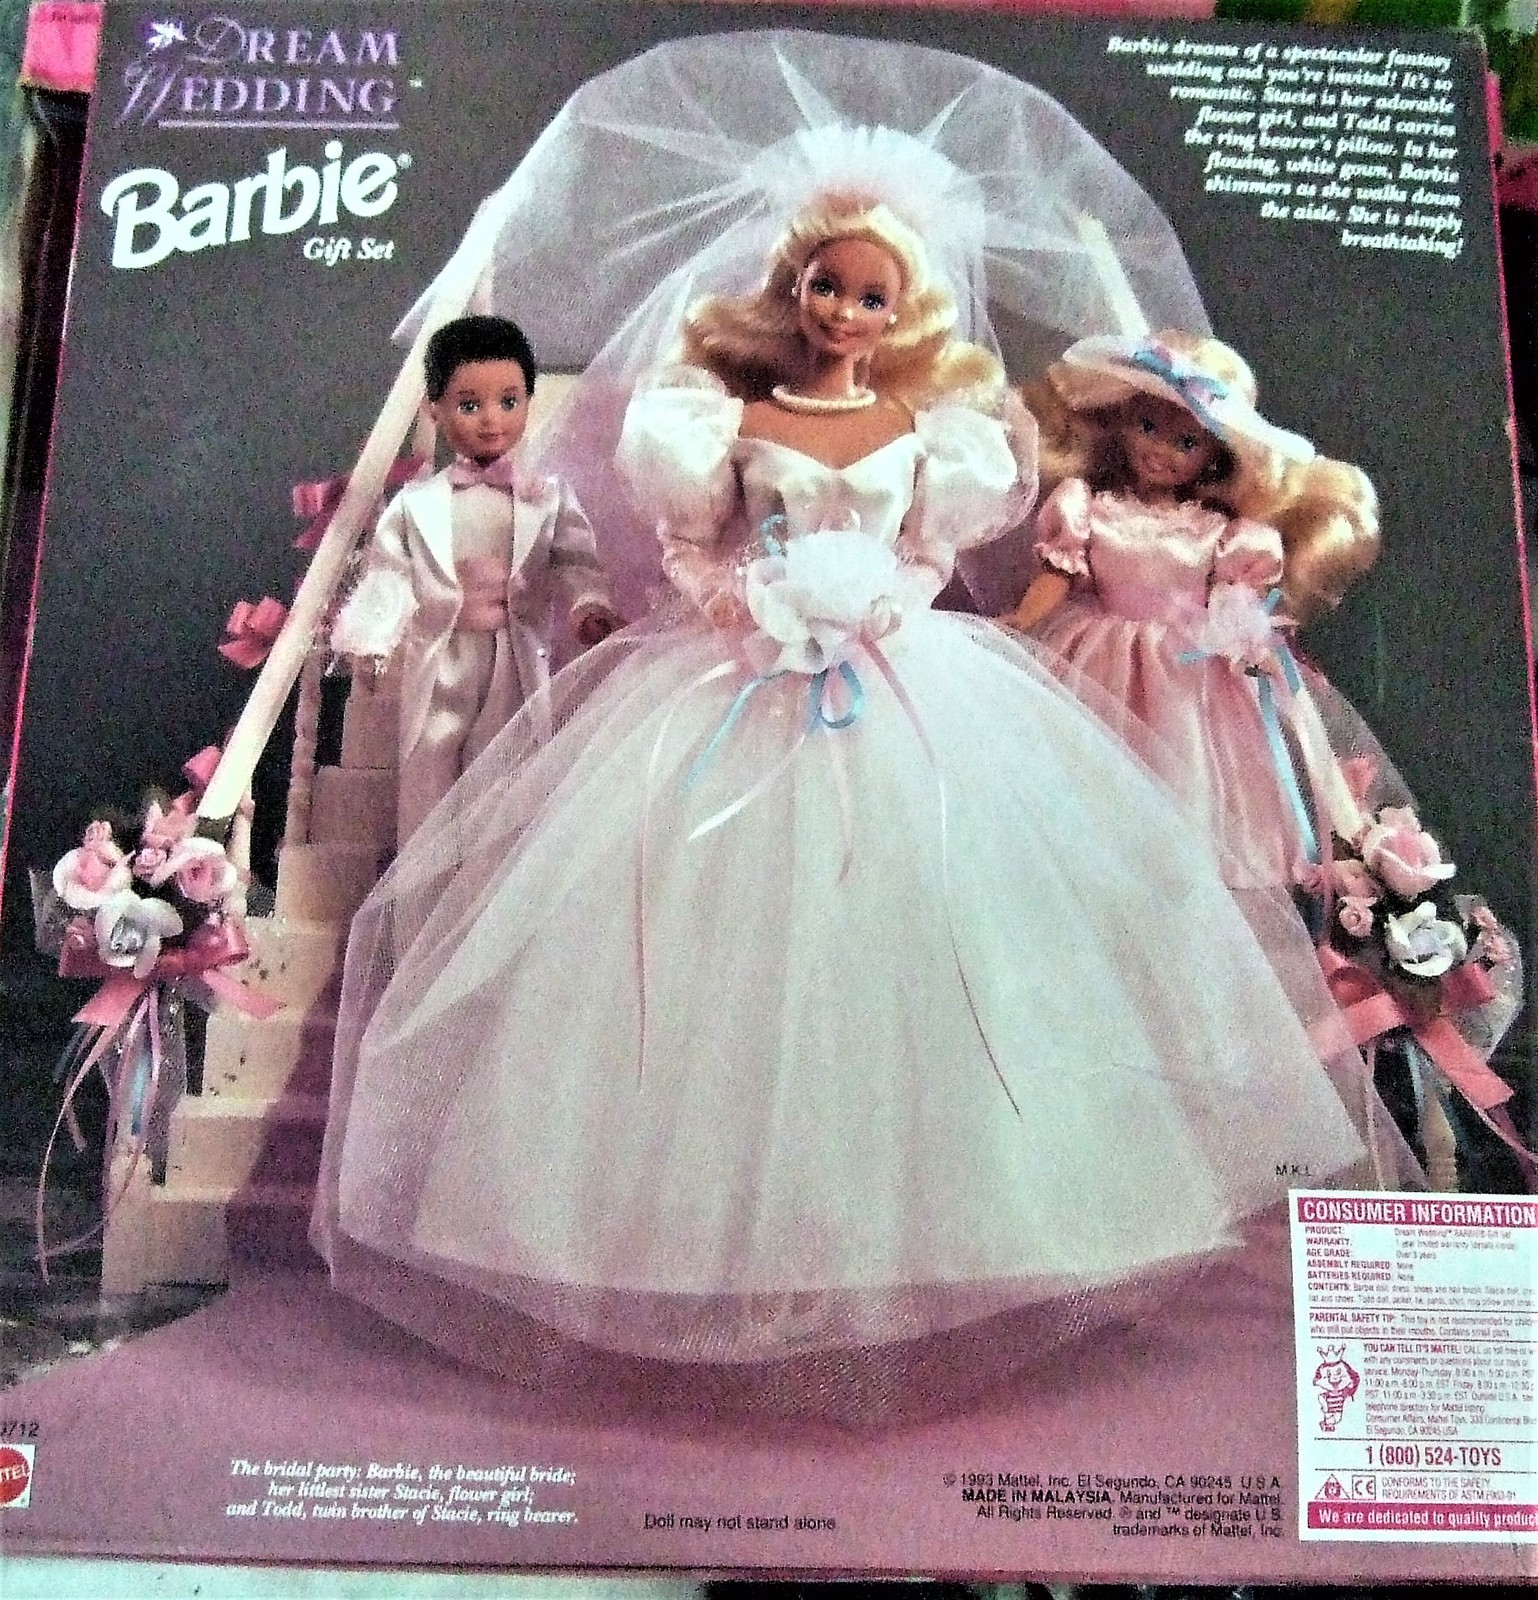 Barbie Doll - Vintage 1993 Dream Wedding Set with Stacie & Todd Limited Edition